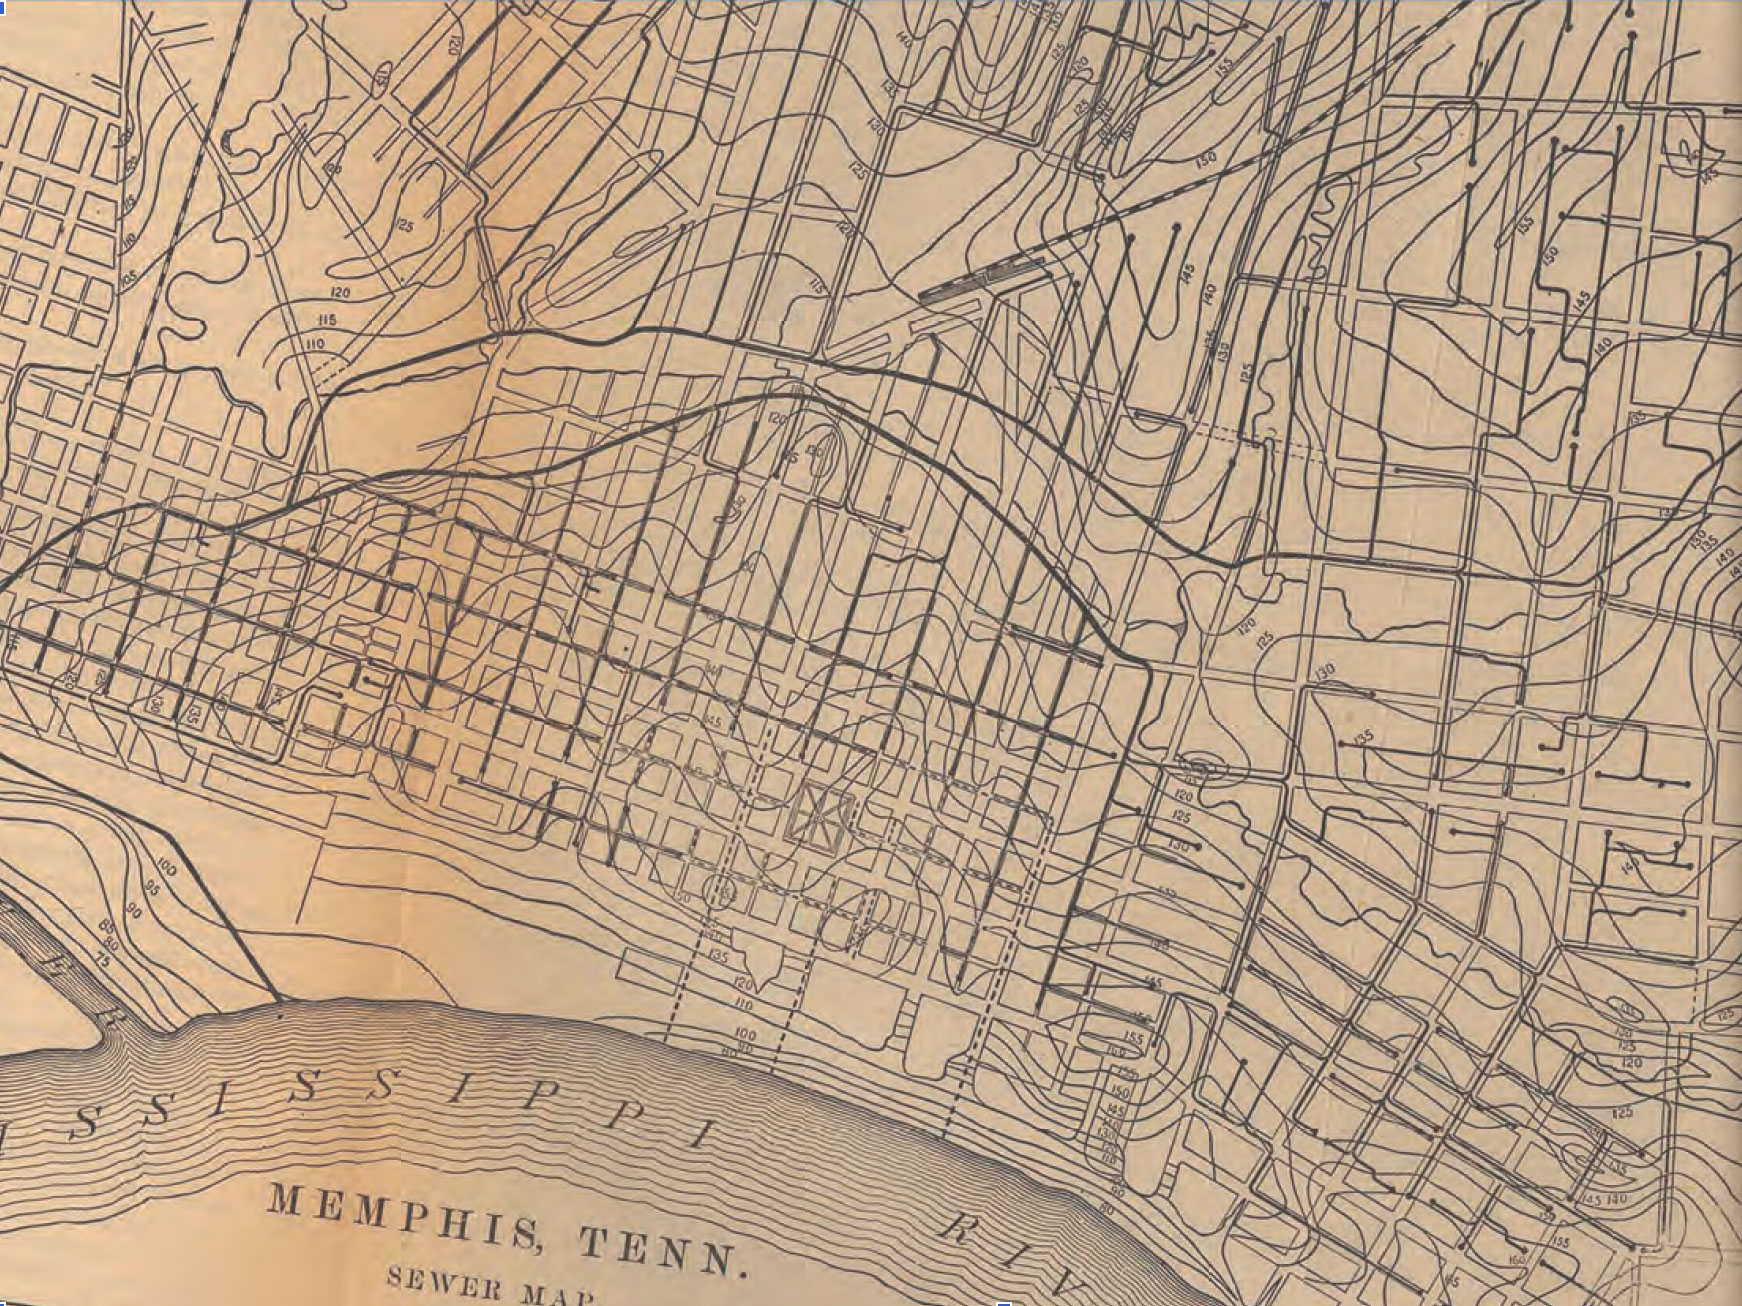 Vintage sewer map memphis